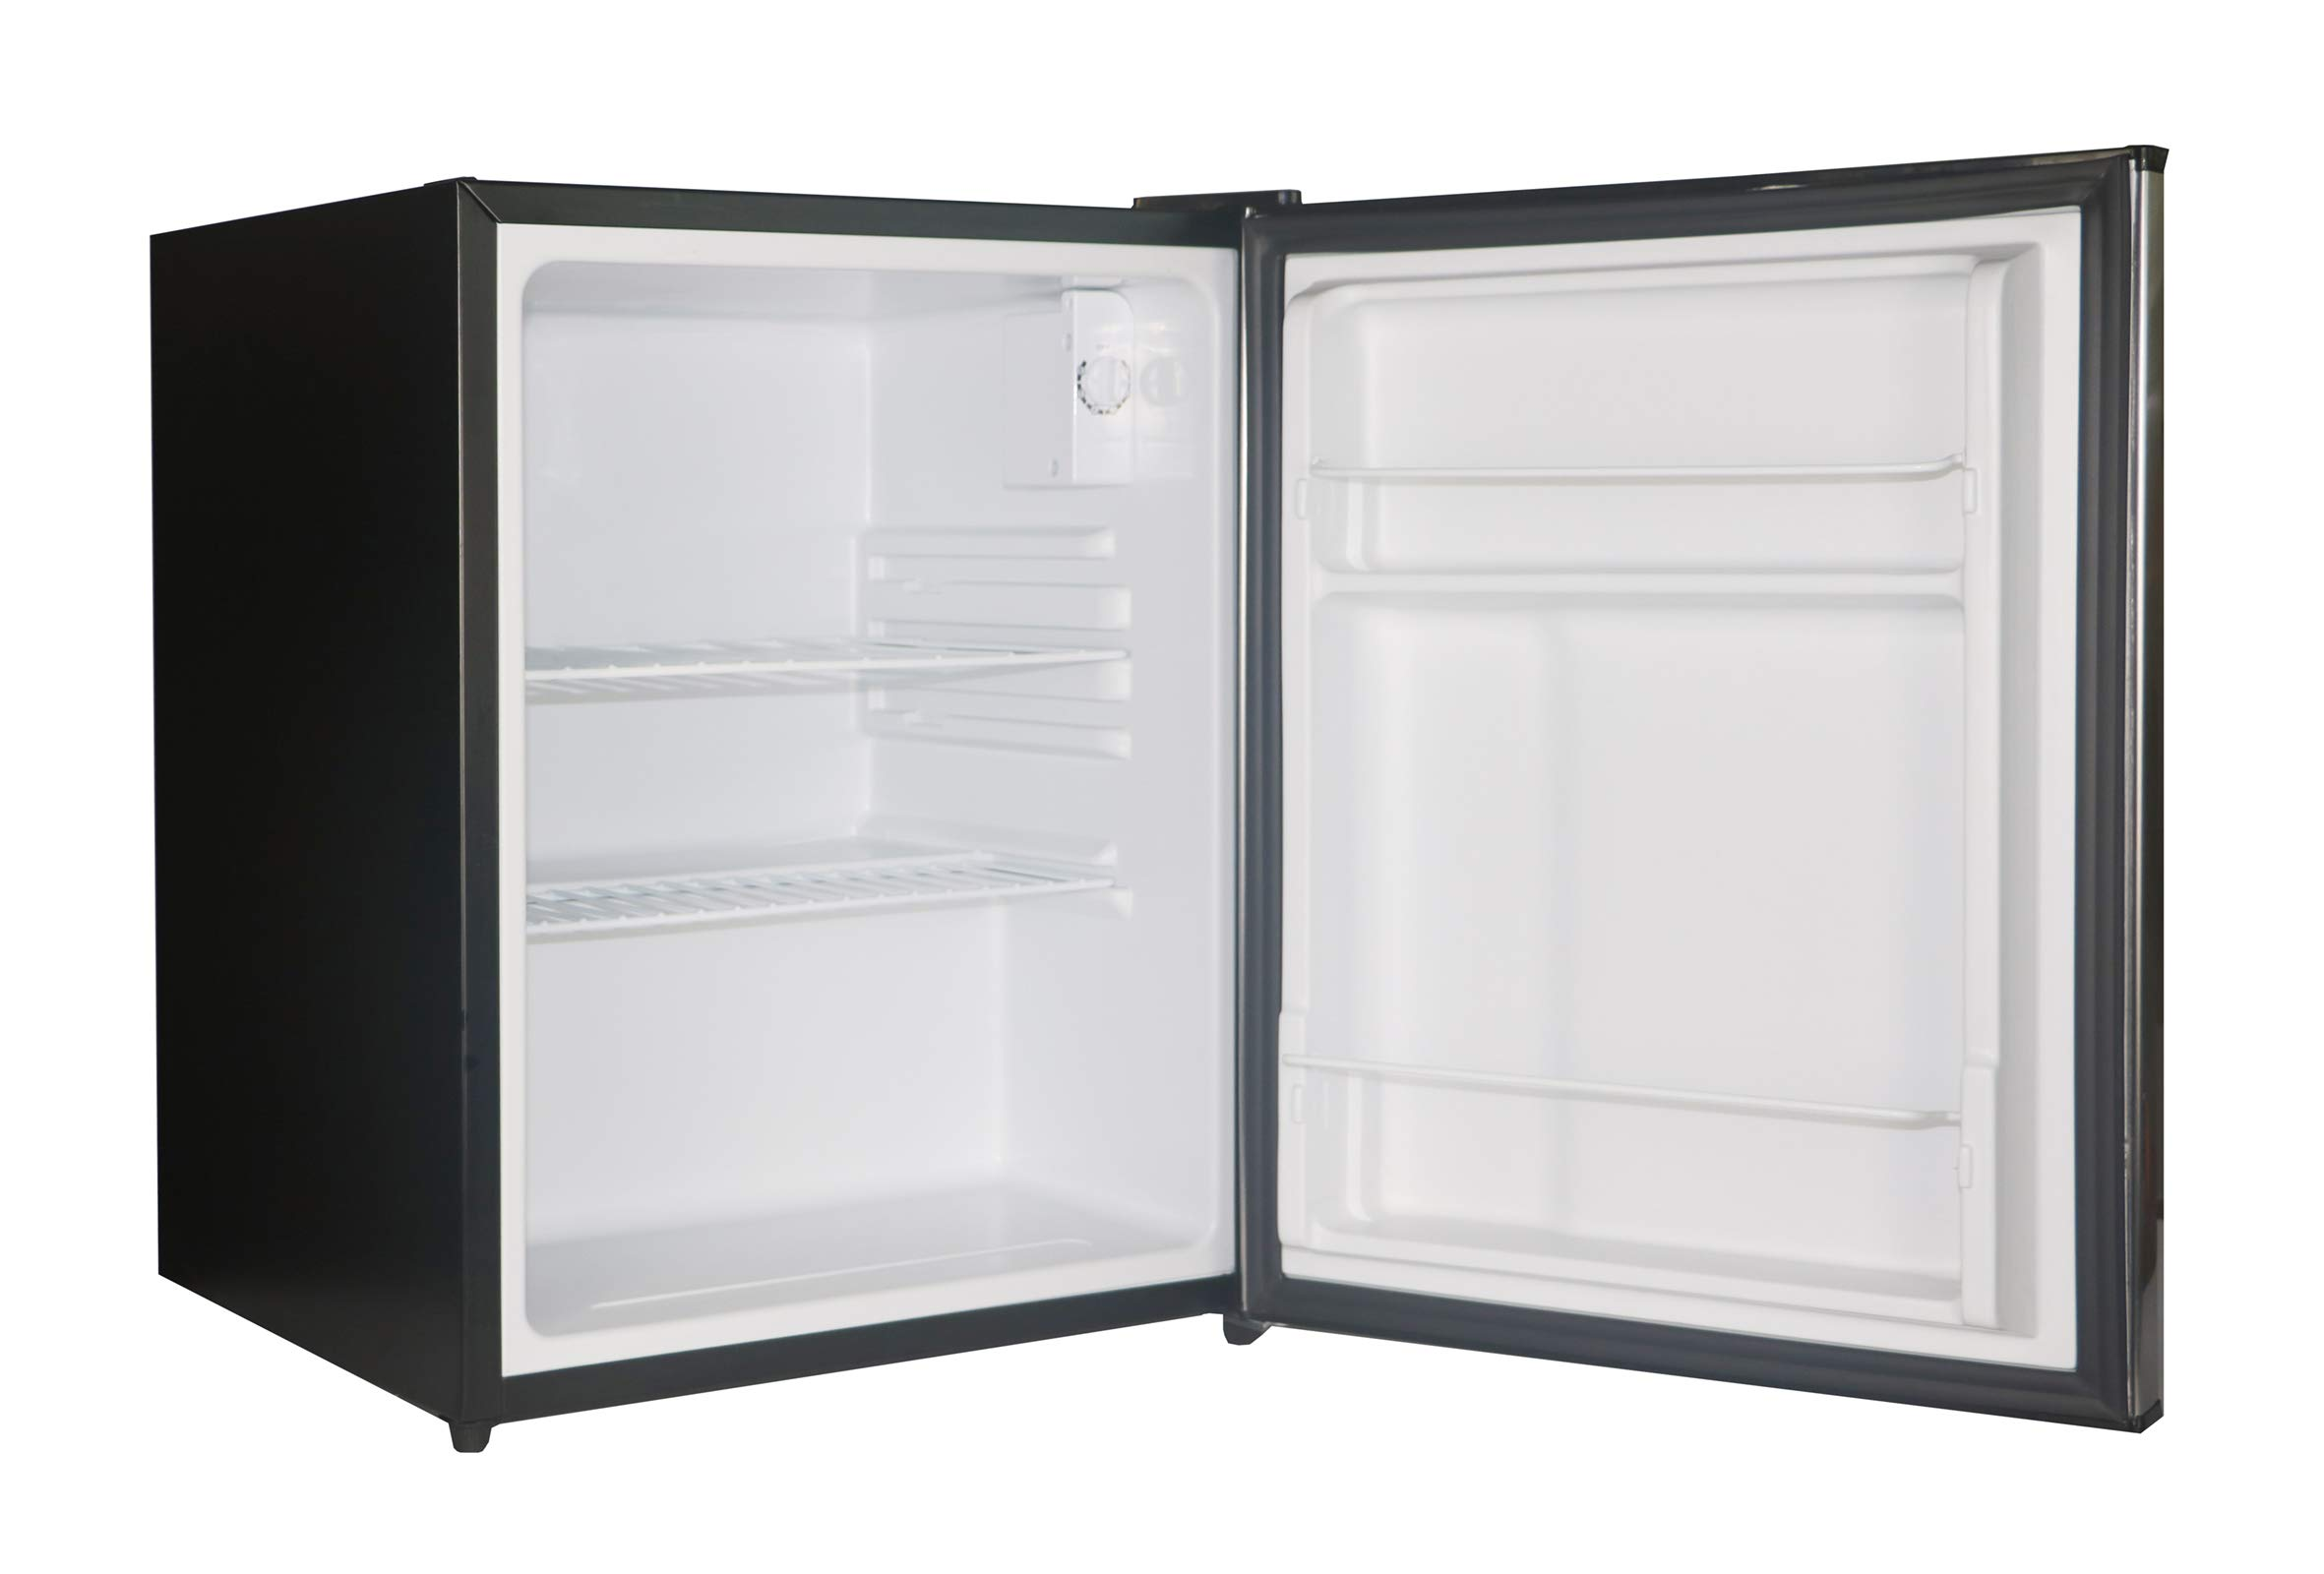 Magic Chef MCAR240SE2 Energy Star Stainless Steel Door 2.4 Cu. Ft. Mini All-Refrigerator by Magic Chef (Image #4)